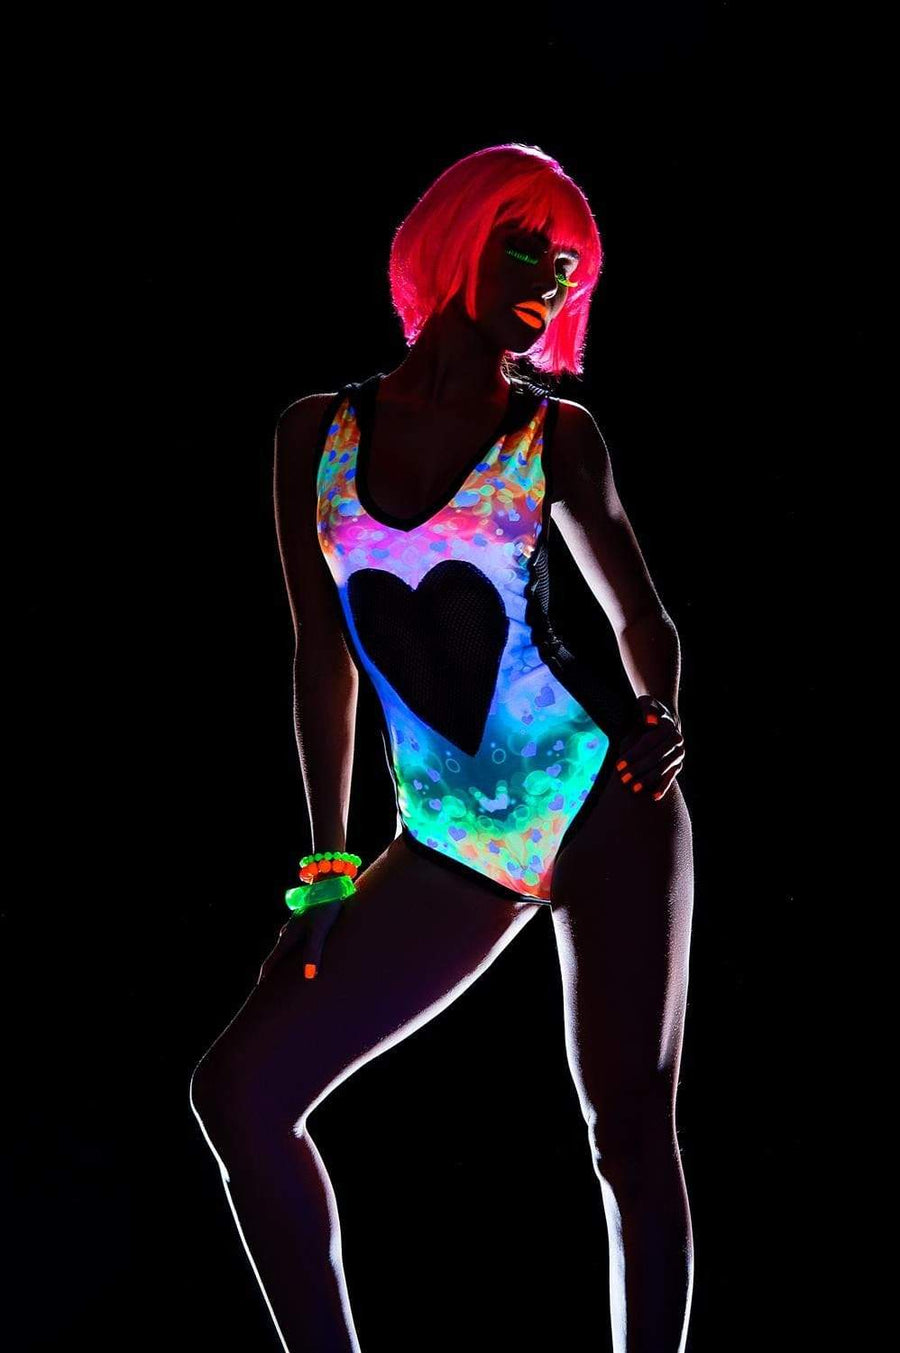 espiral Glow in the Dark Sheer Heart Cut Out Bodysuit Glow in the Dark Sheer Heart Cut Out Bodysuit Mapale 2477 Apparel & Accessories > Clothing > Underwear & Socks > Lingerie